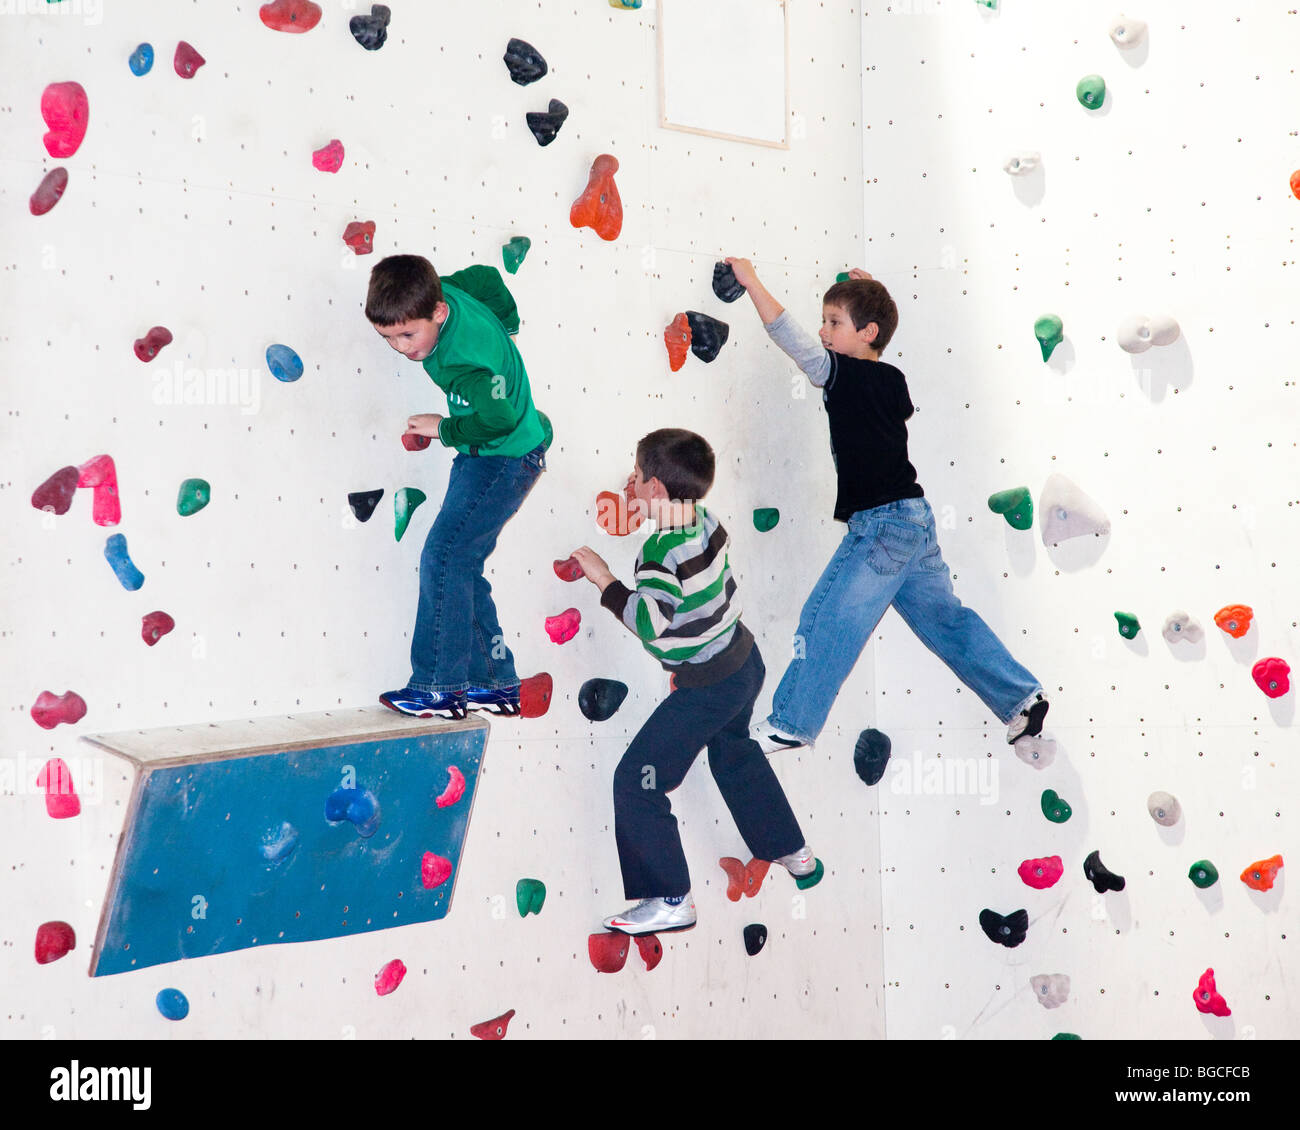 Children practice climbing on indoor climbing wall Cardiff Wales UK - Stock Image